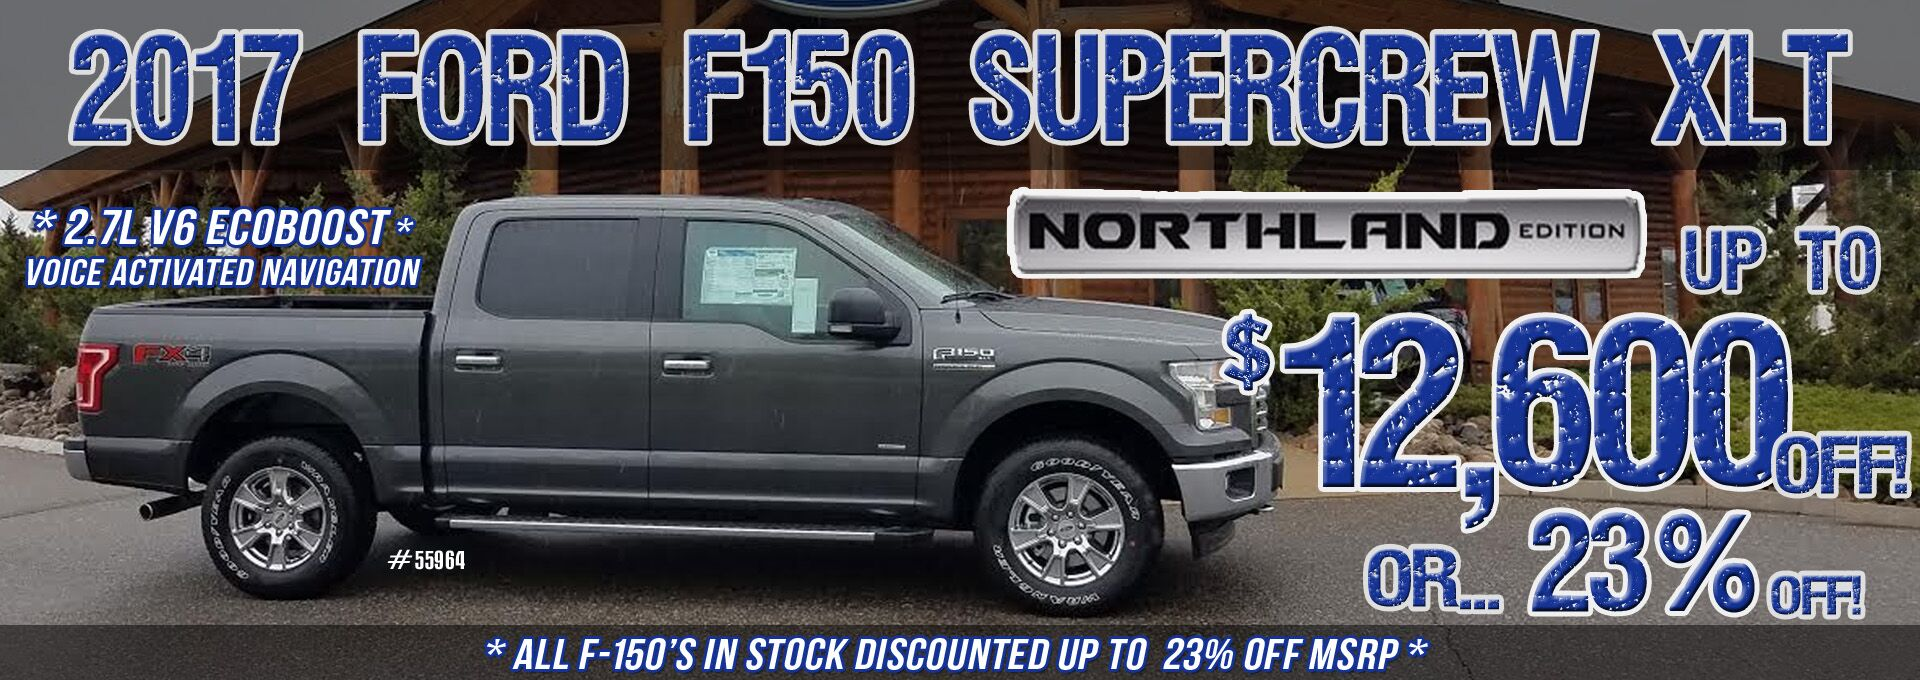 Northland Ford